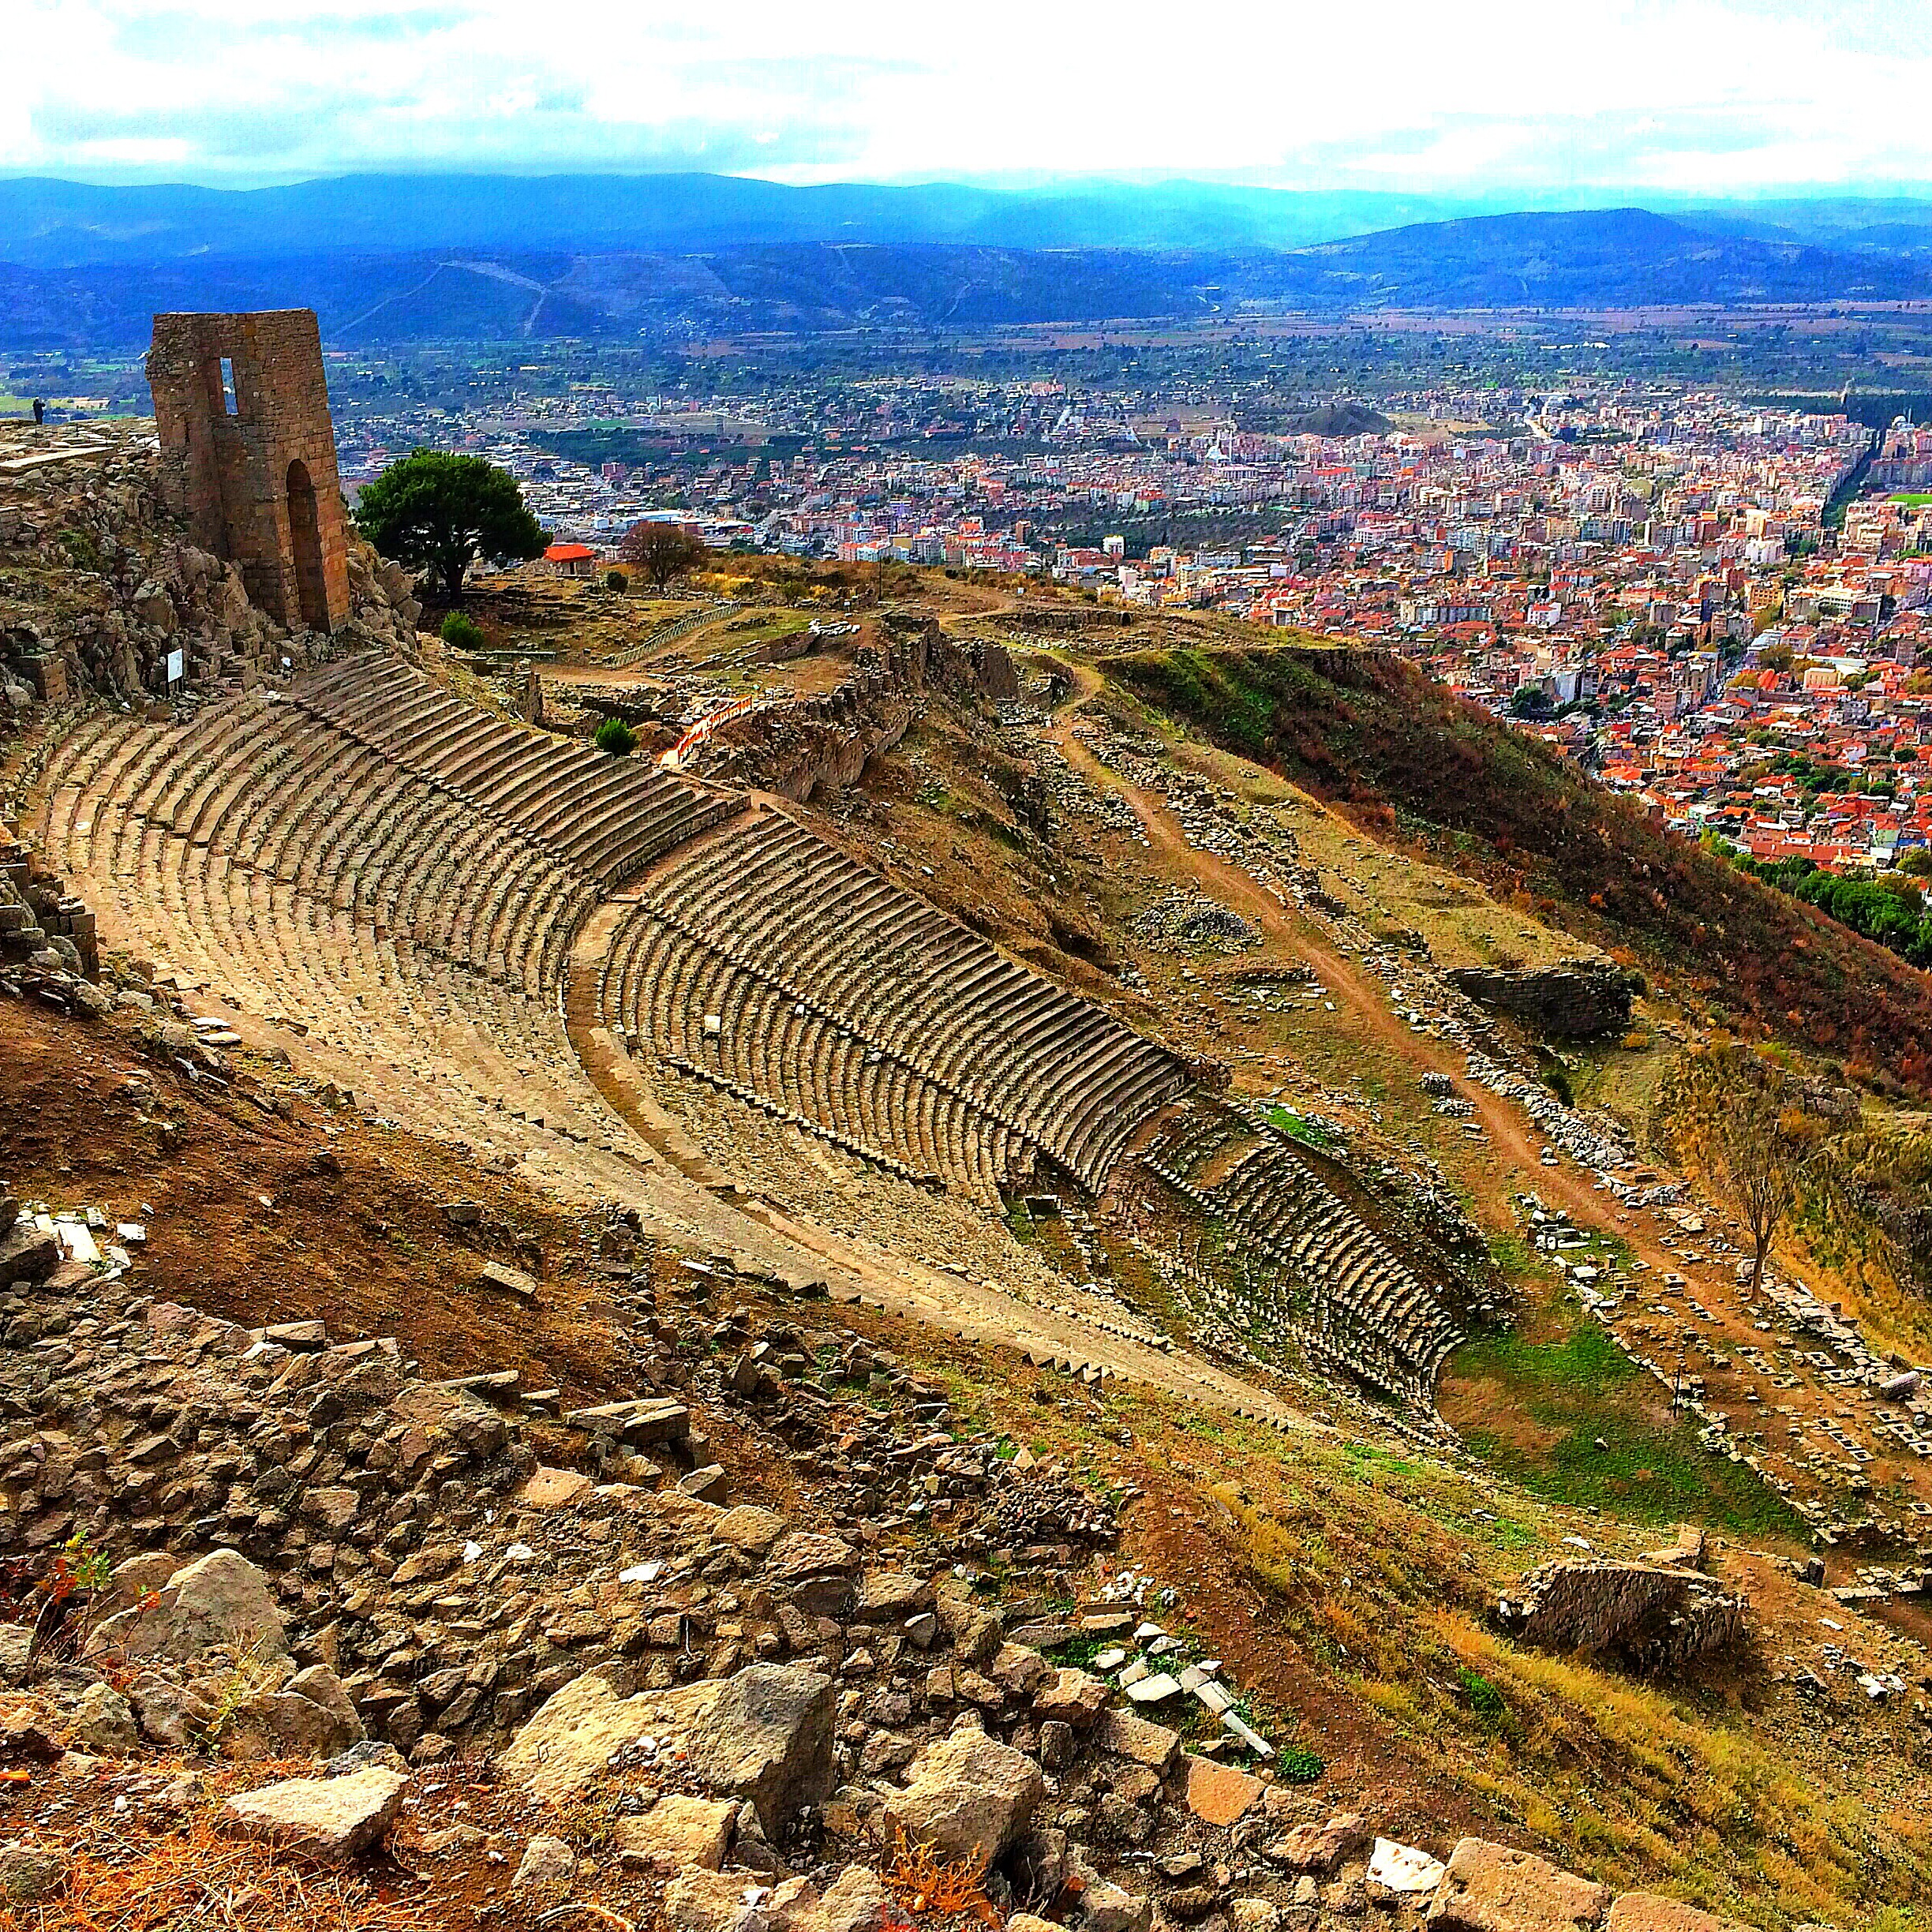 The Ancient City of Pergamon